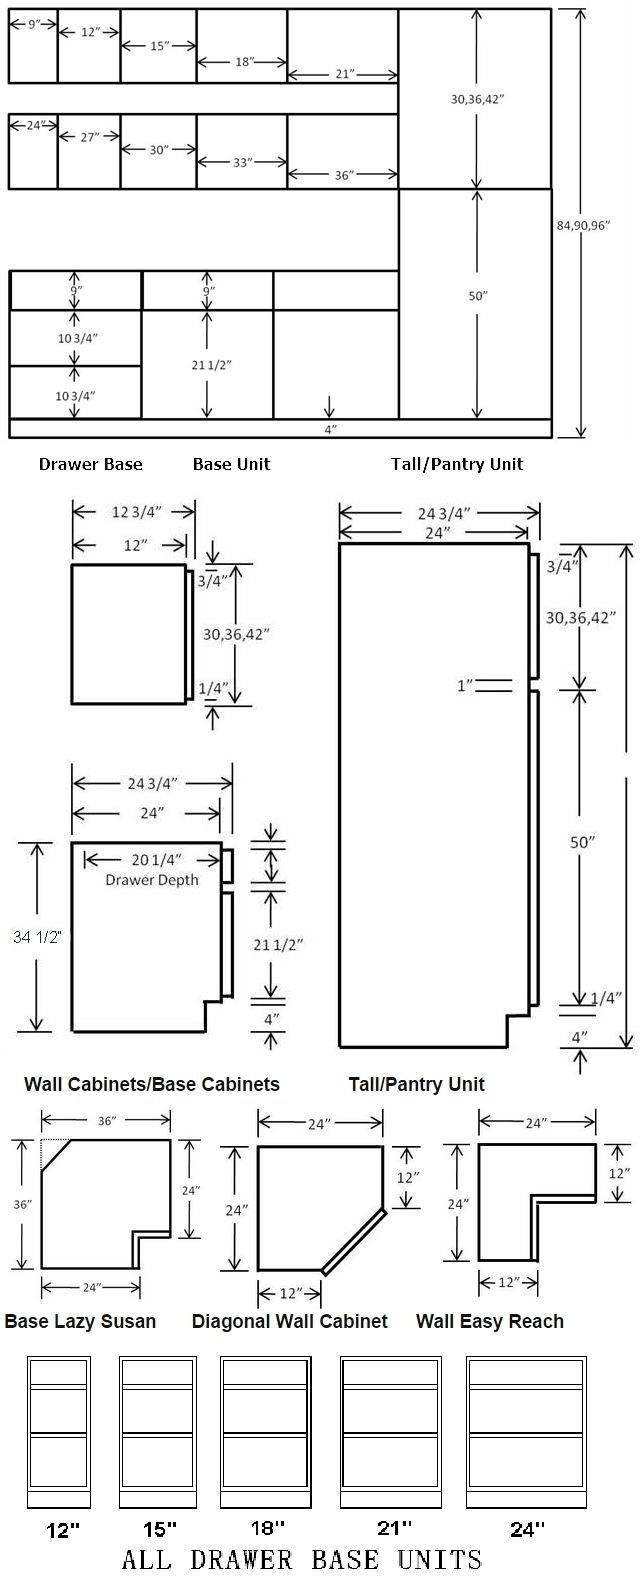 Standard Cabinet Dimensions Available From Most Cabinet Suppliers. Kitchen  Cabinets That Sit On The Floor Are Called U0027Base Cabinetsu0027, While The Upper  ...